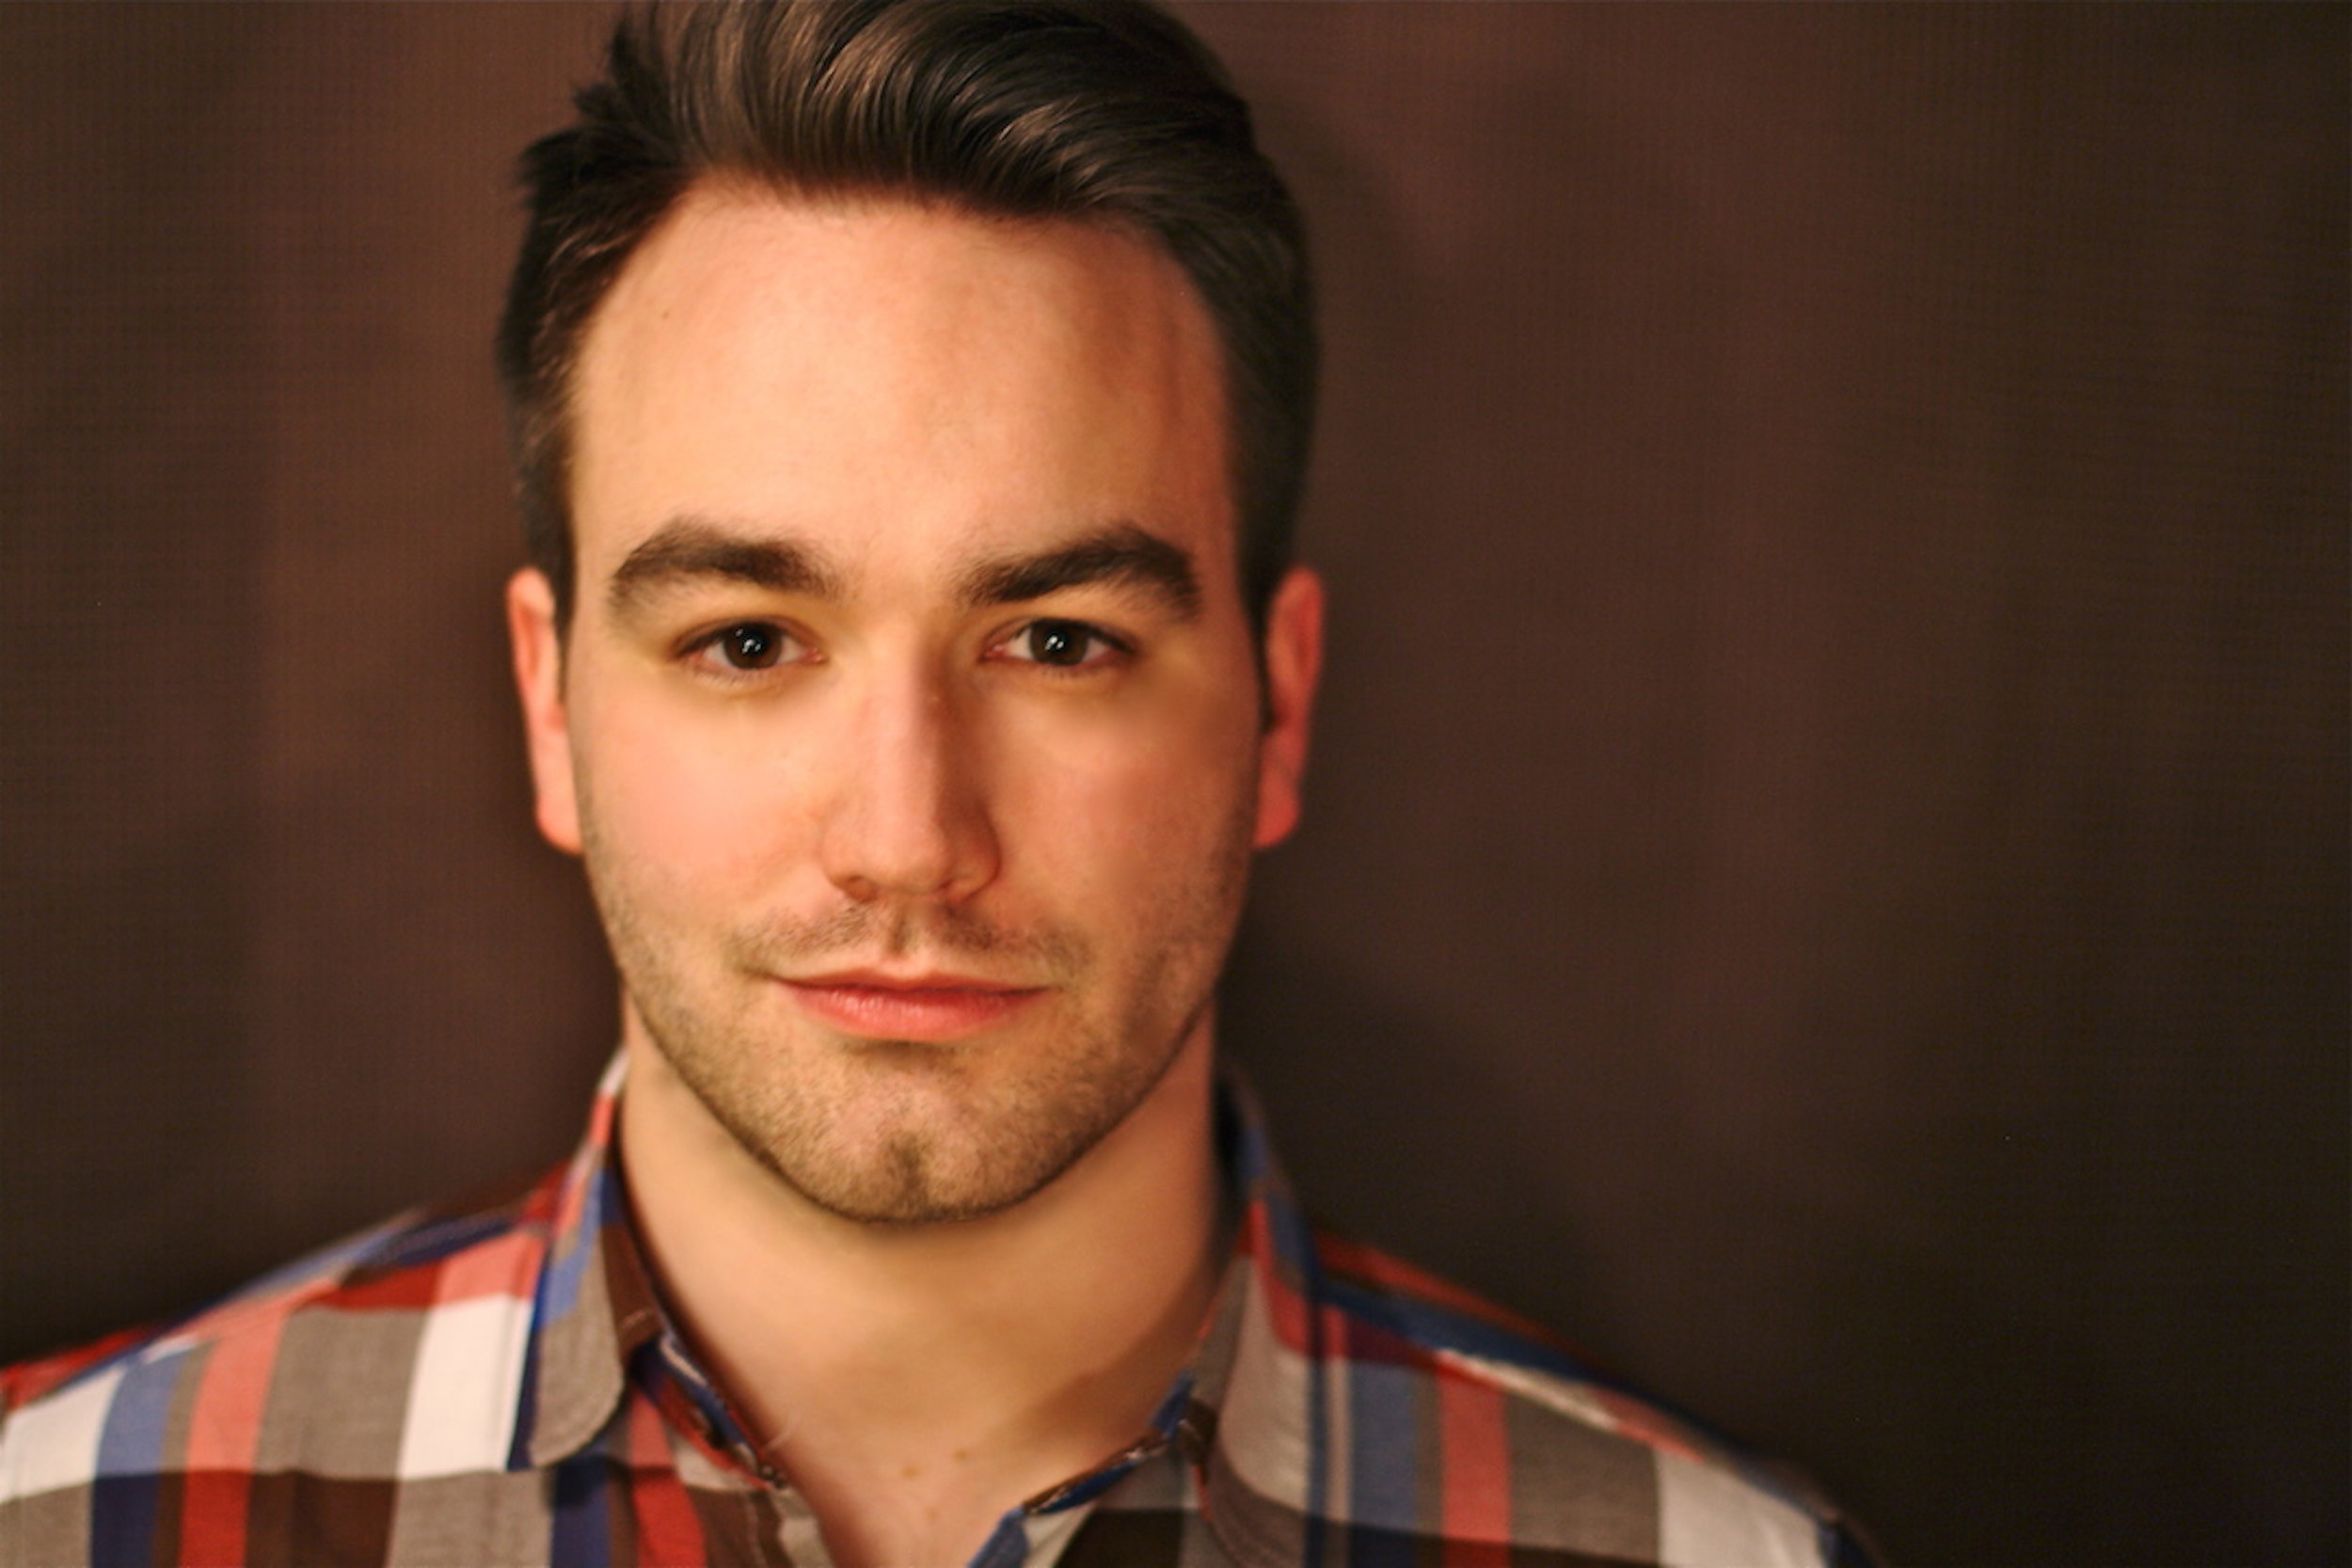 Alex Newkirk Headshot 2.JPG